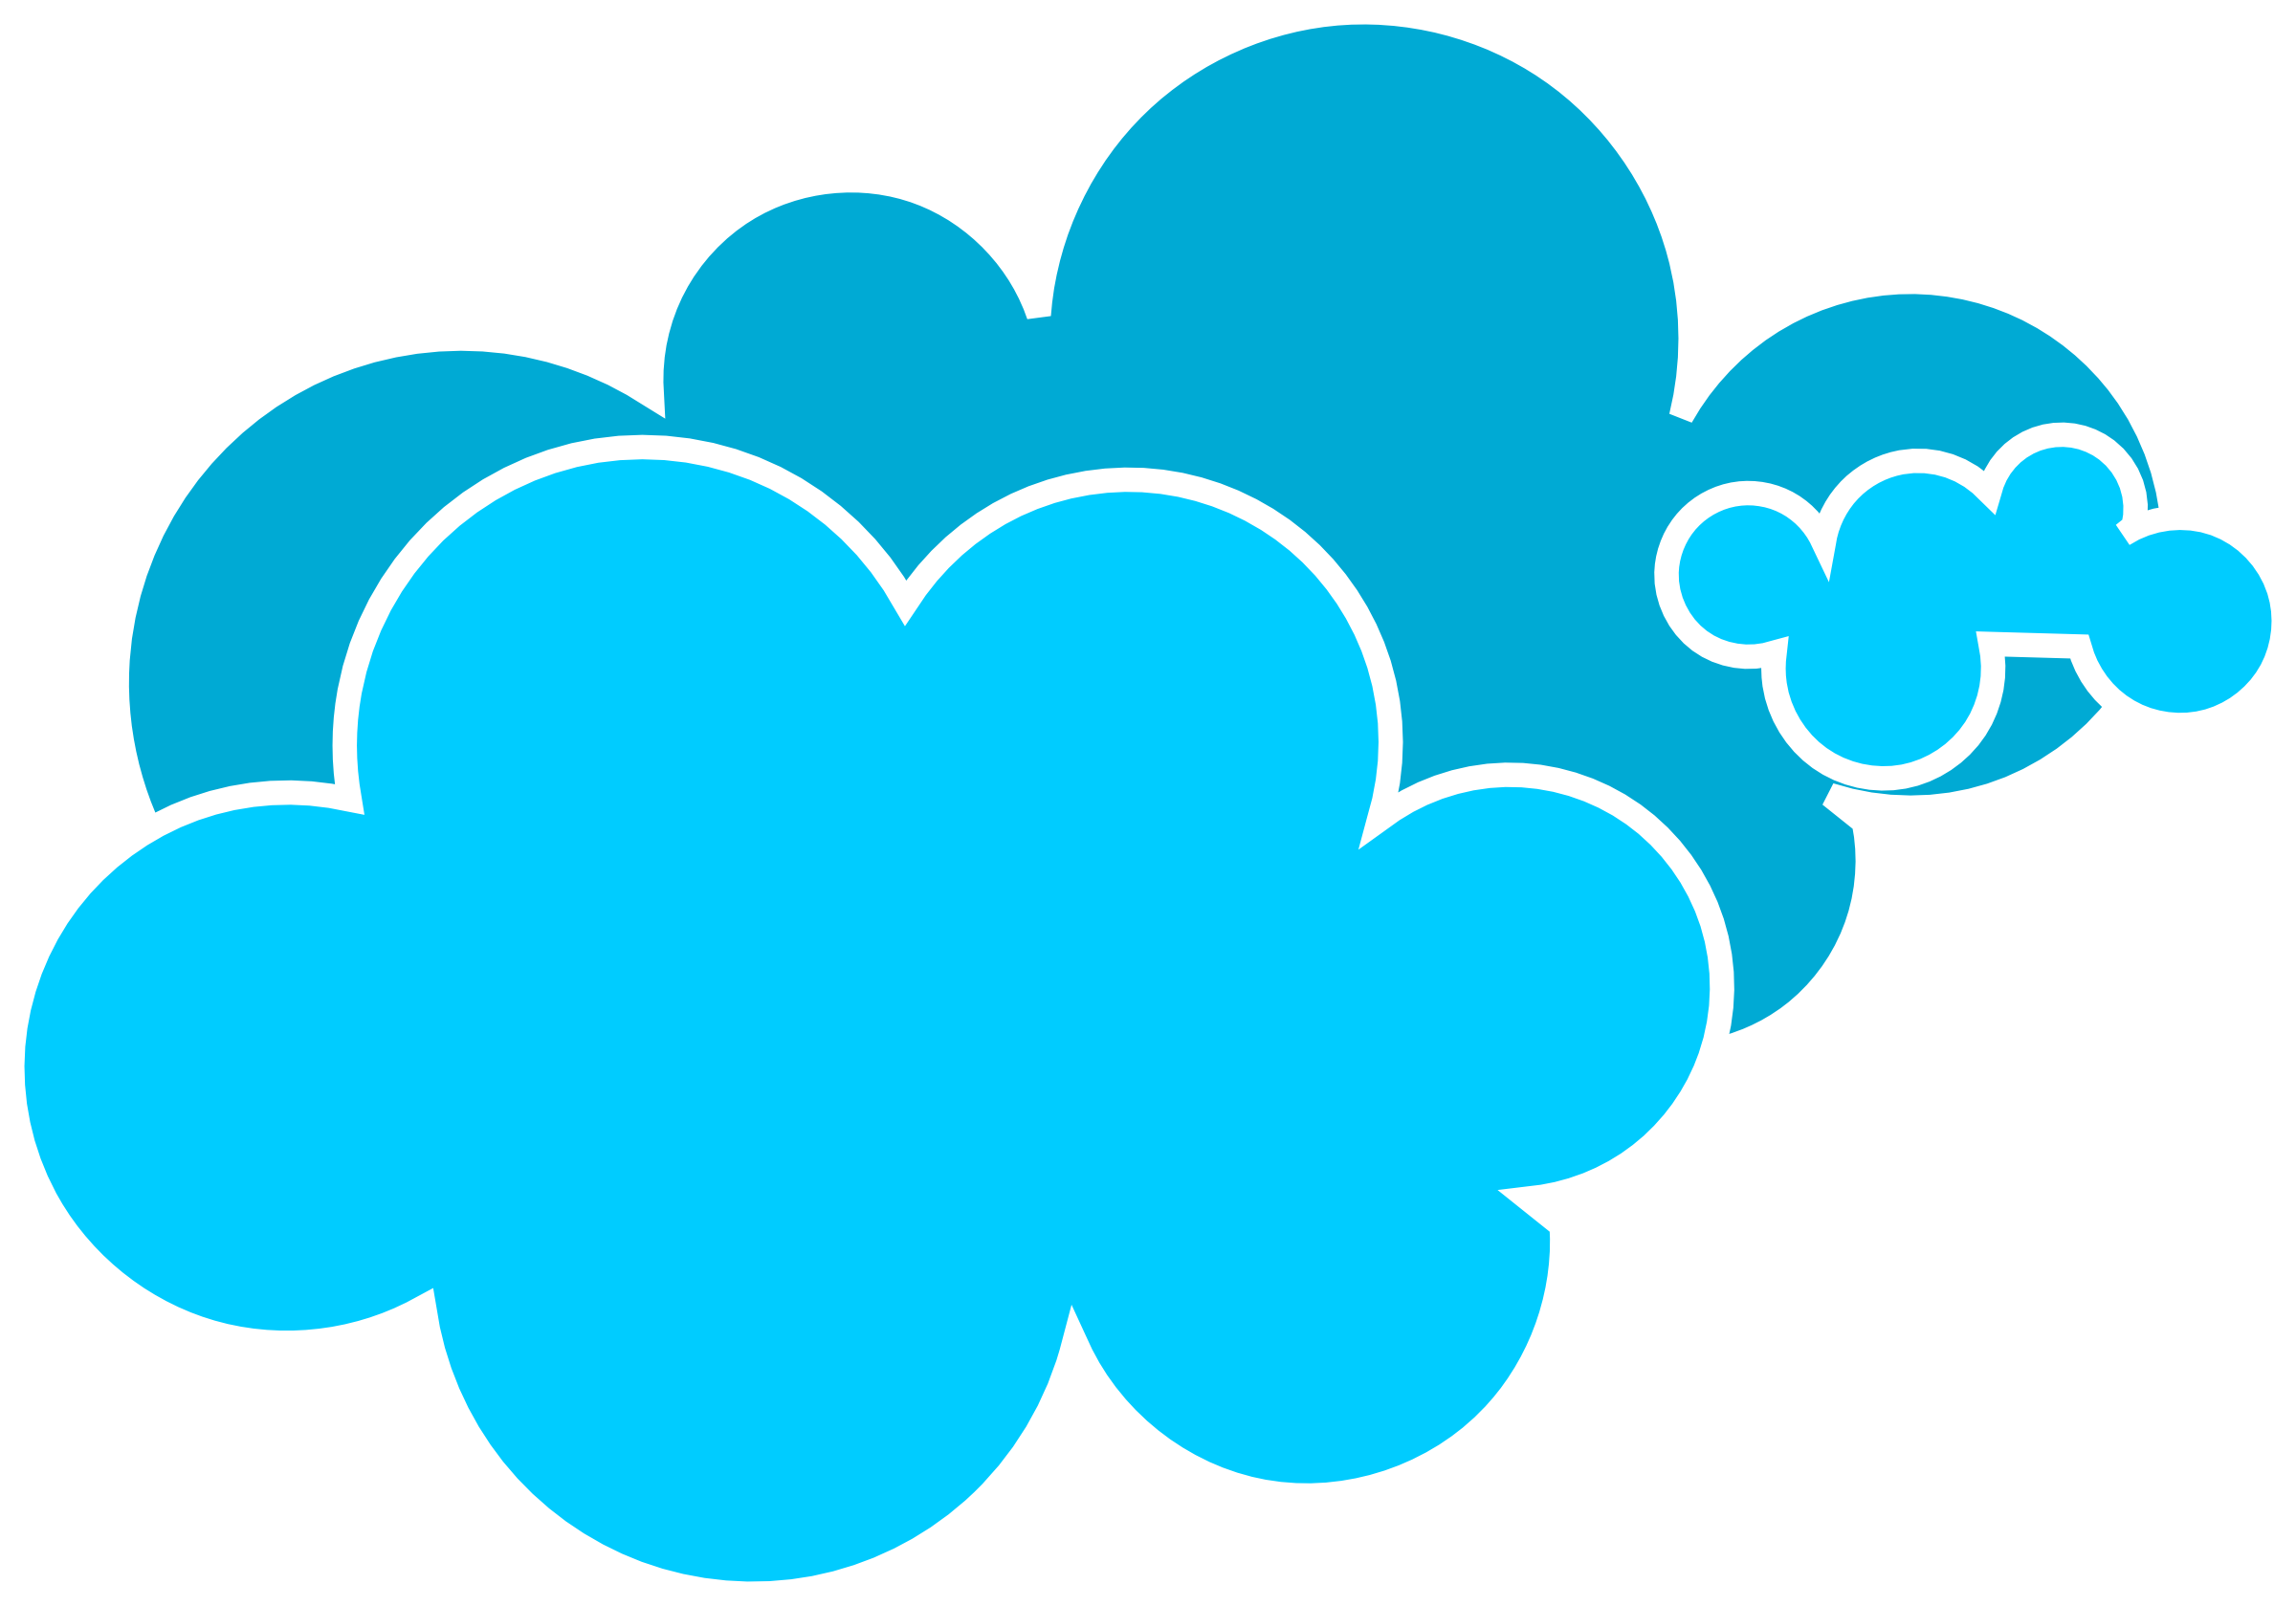 Clouds clipart clipground.